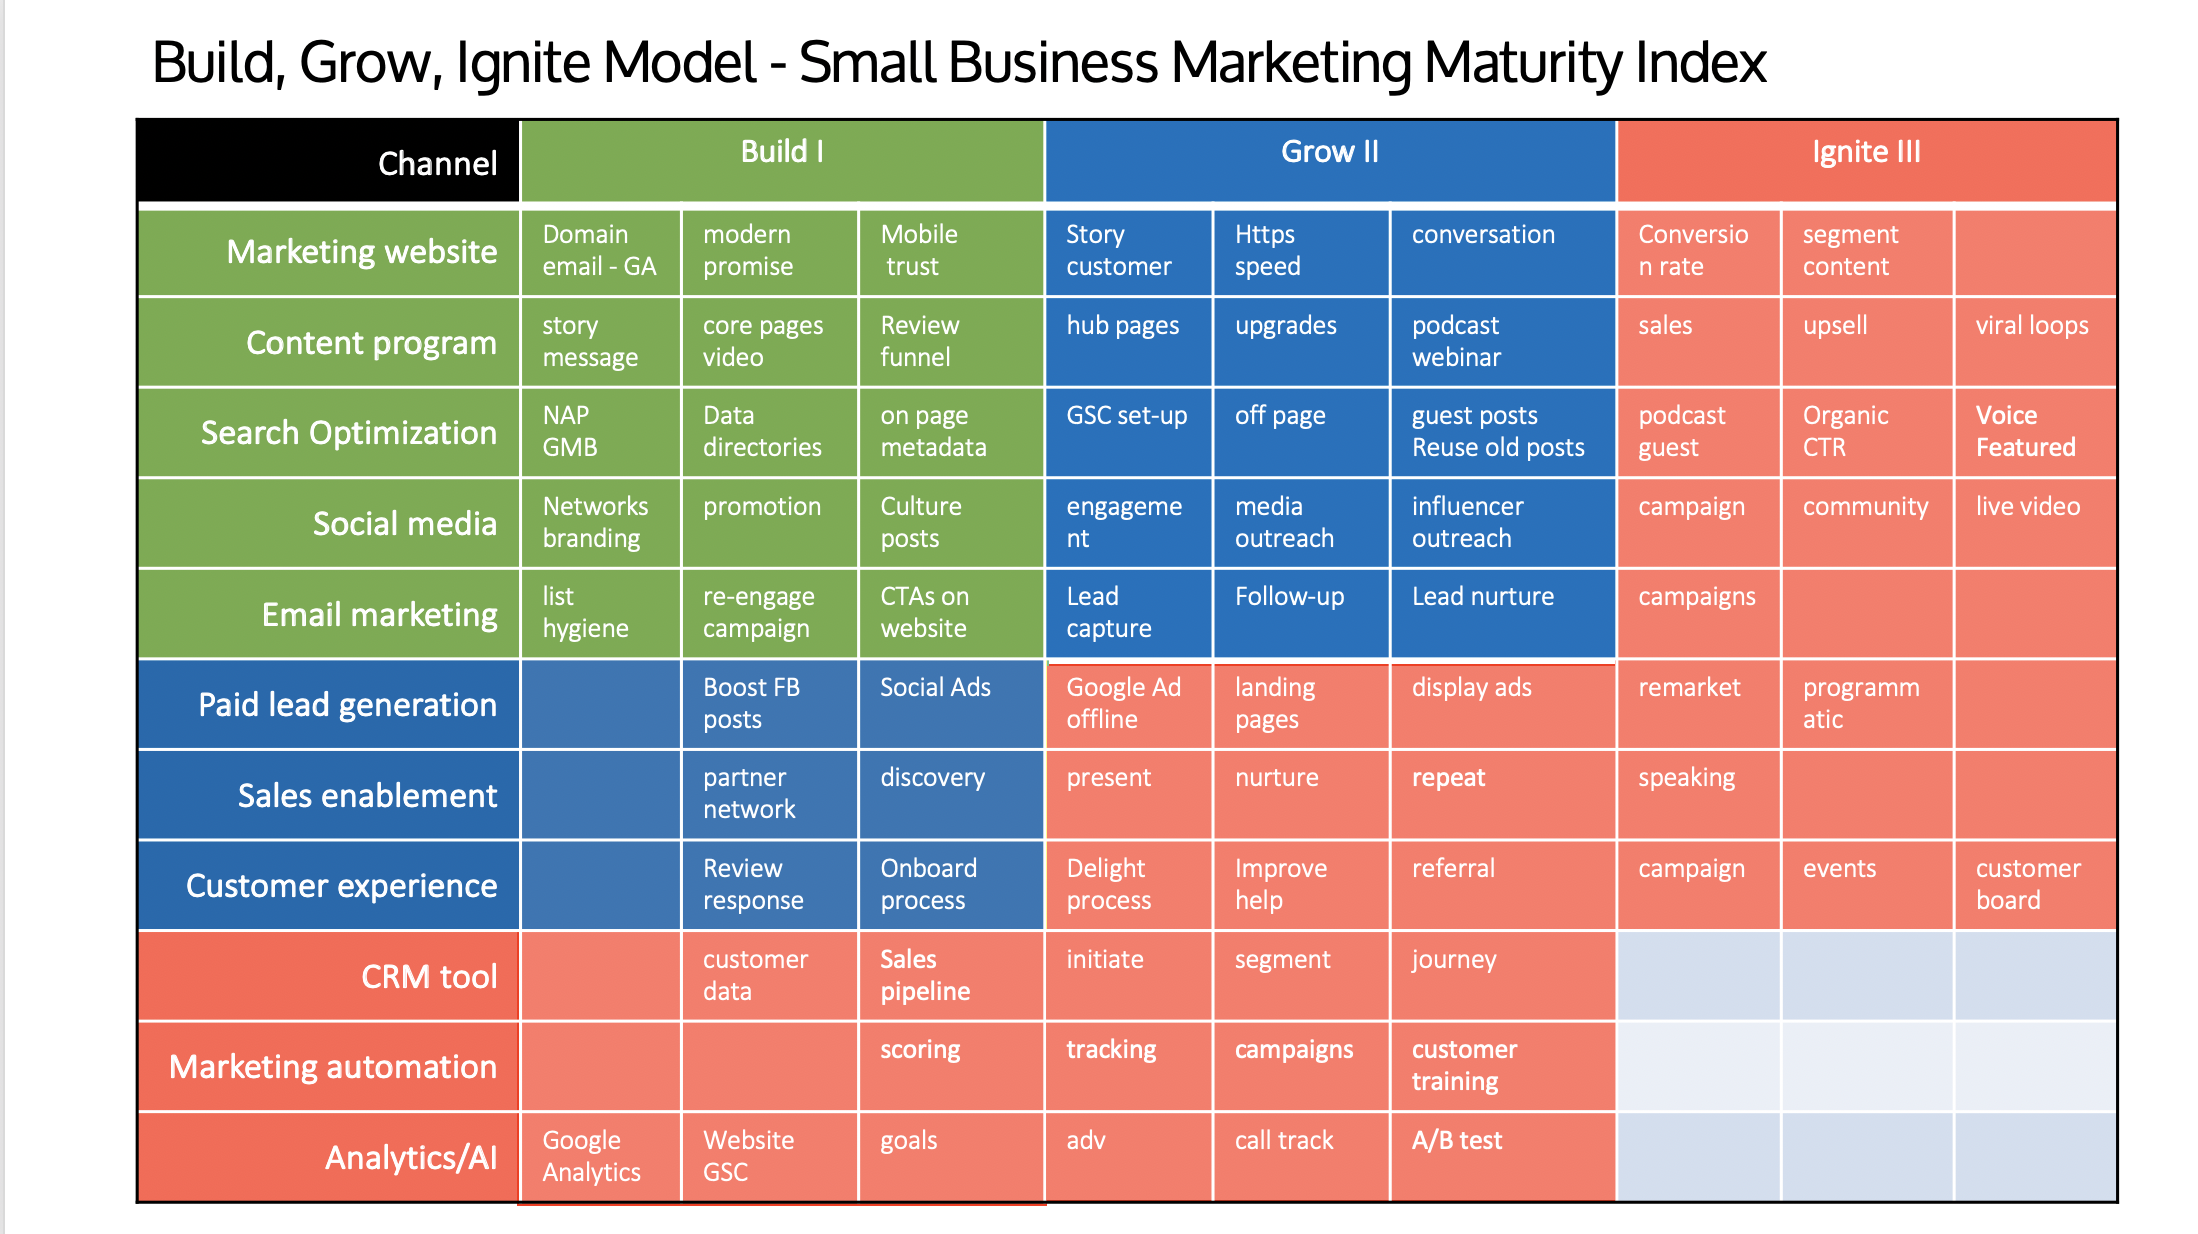 Marketing Maturity Model for Small Business